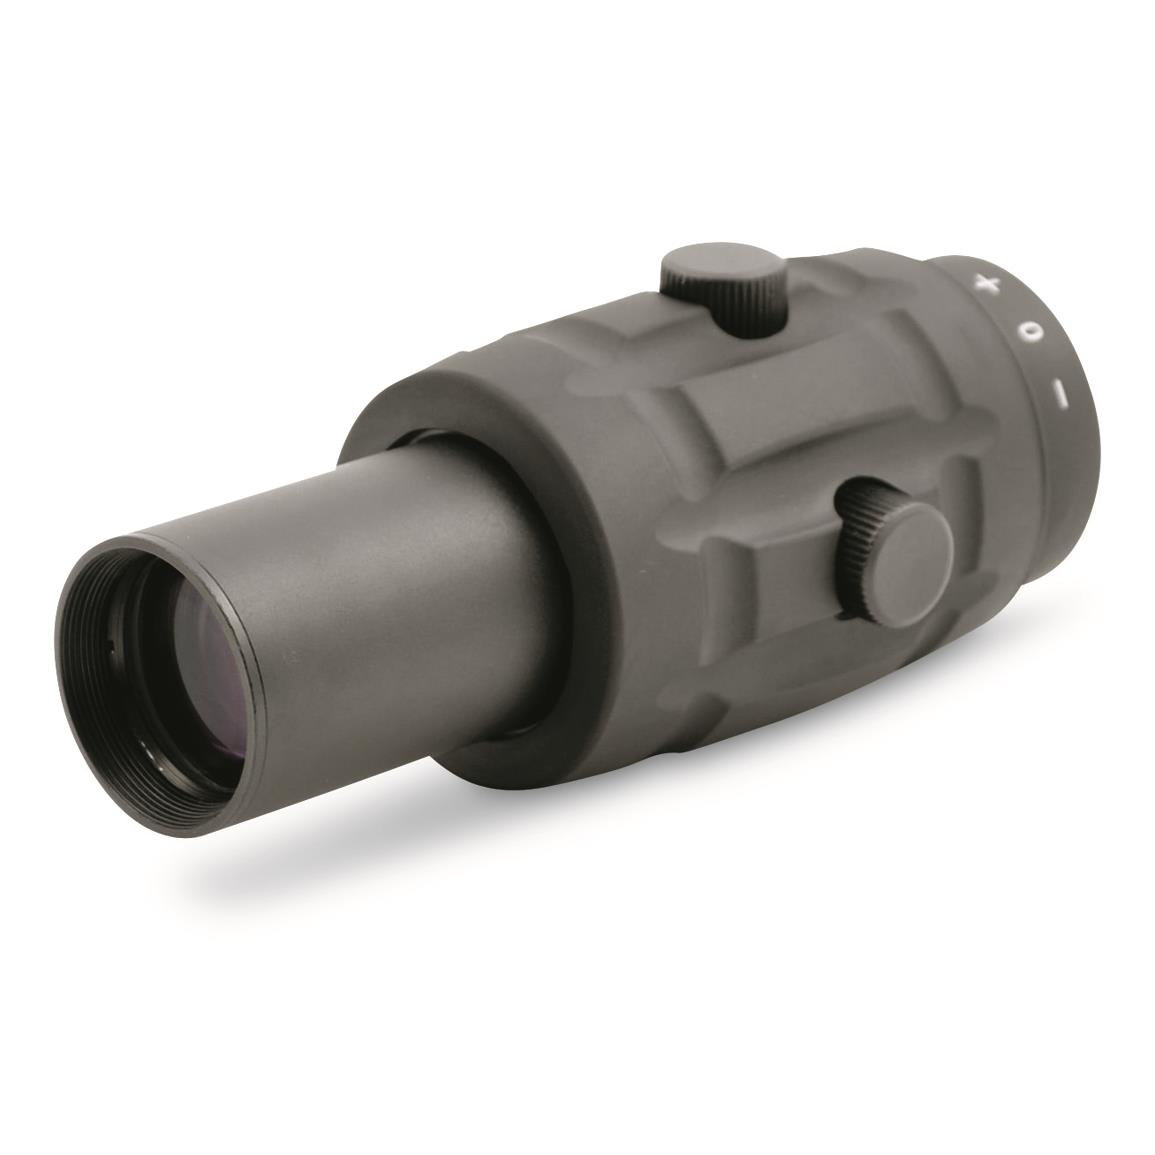 3x Magnifier Scope